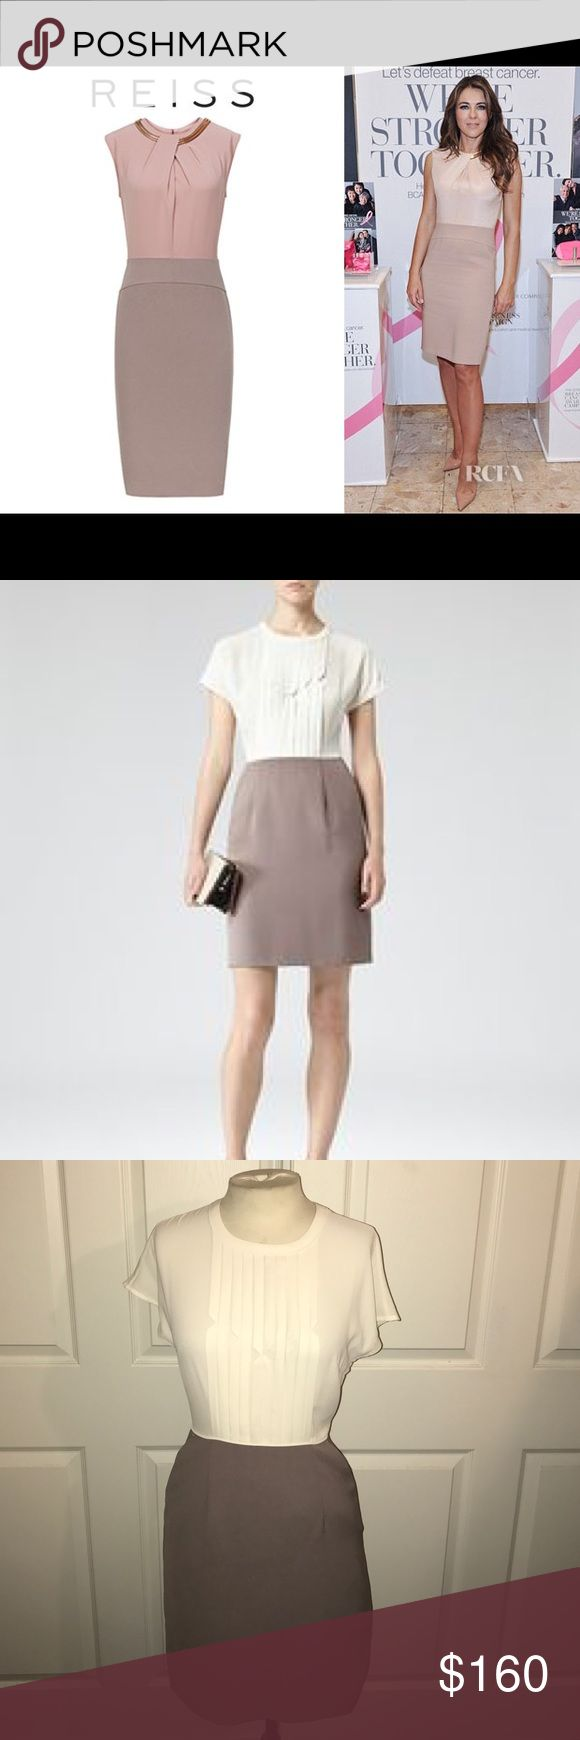 Reiss Two Toned Dress with side pockets Never worn. Reiss beige and taupe dress with side pockets and keyhole back with zipper. This is one of the softest feeling dresses you'll ever wear. Classy look as seen on Princess Kate and Elizabeth Hurley. Reiss Dresses Midi